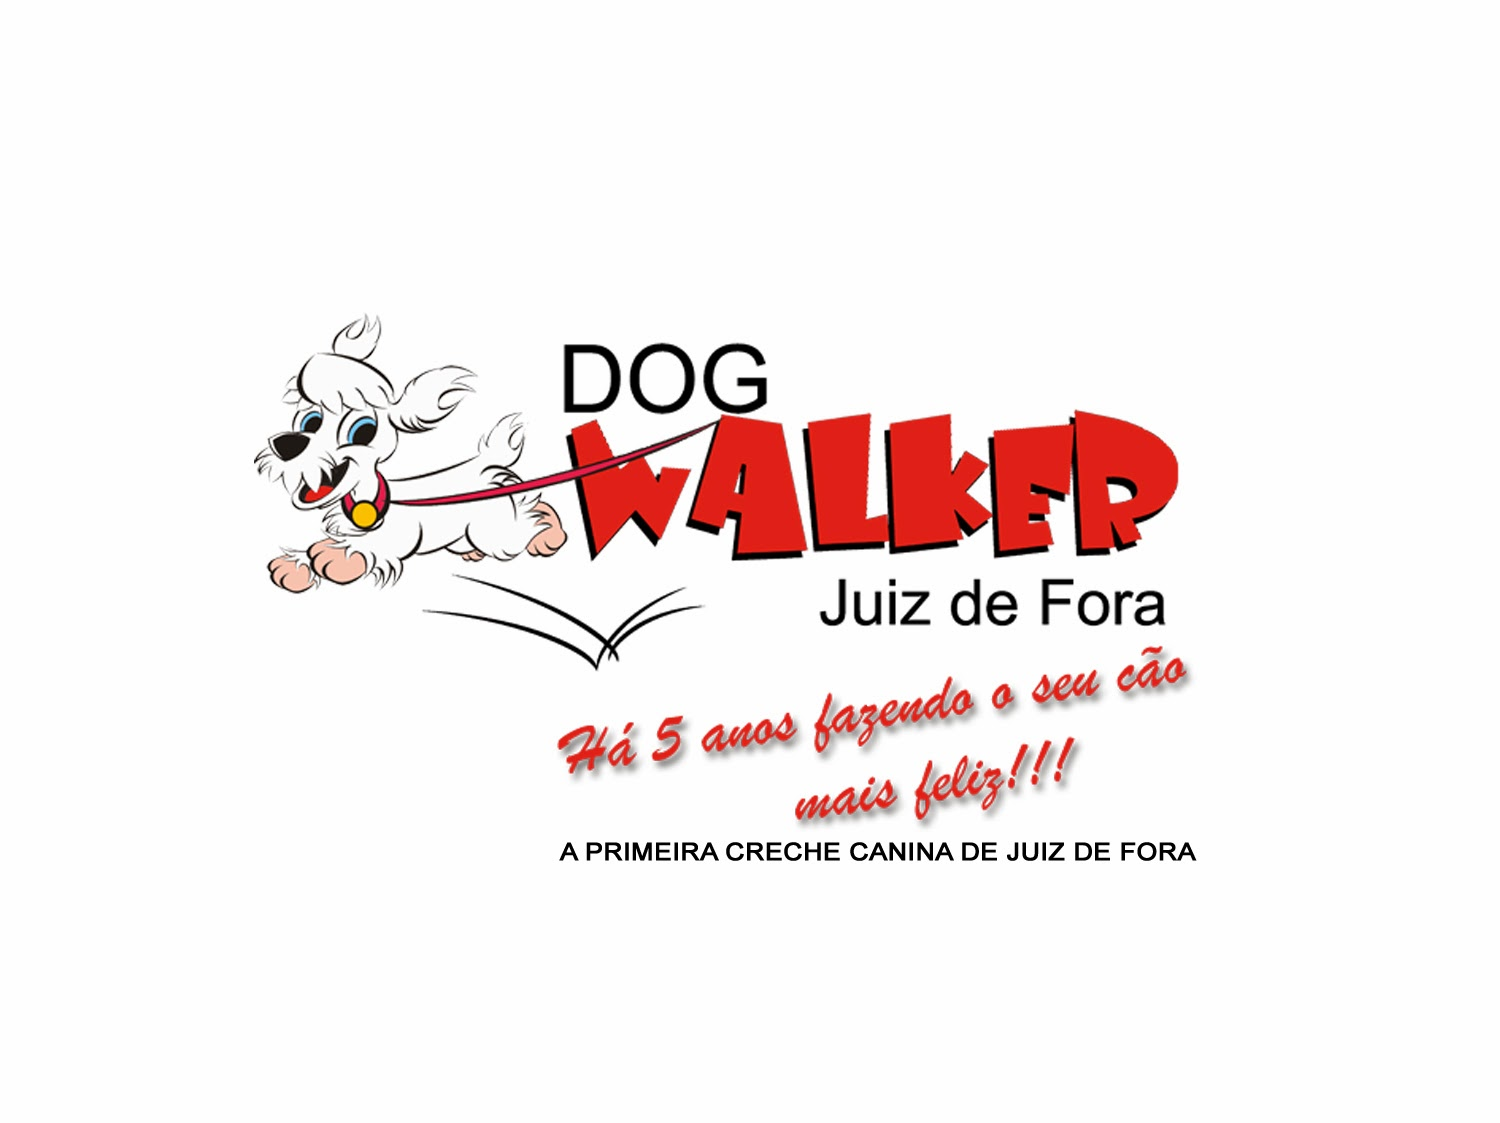 Dog Walker Juiz de Fora